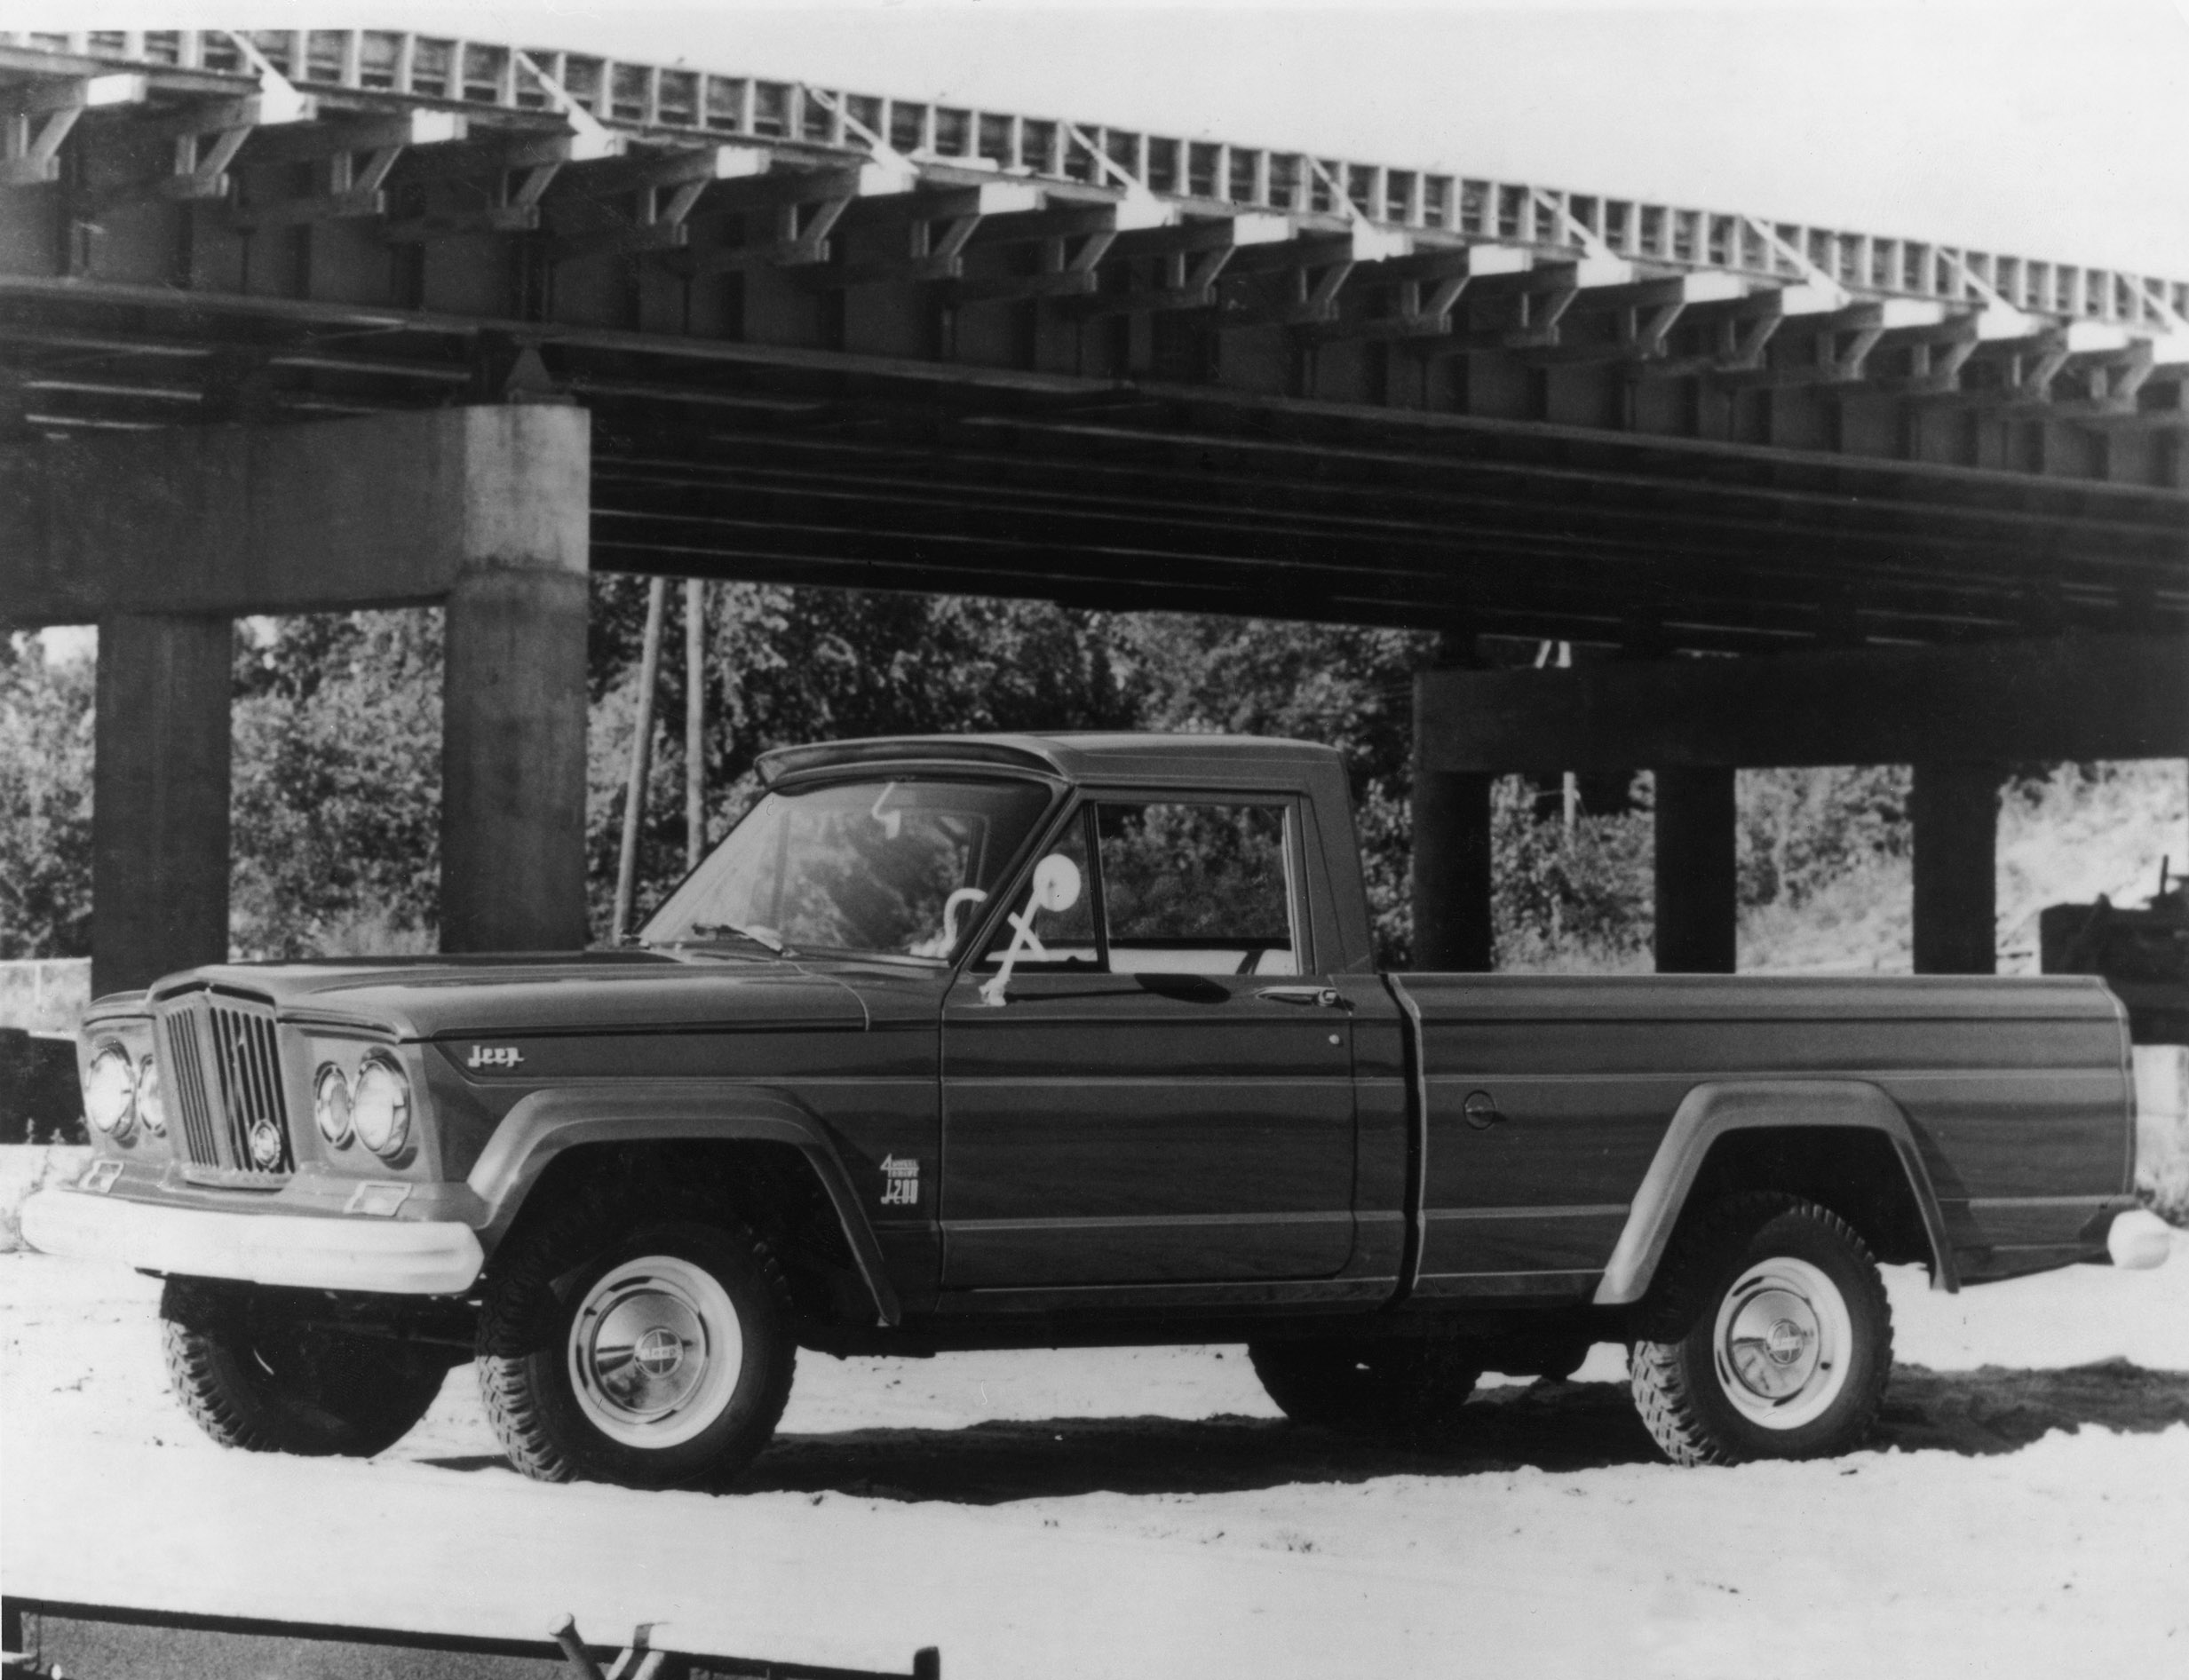 Jeep Gladiator black and white